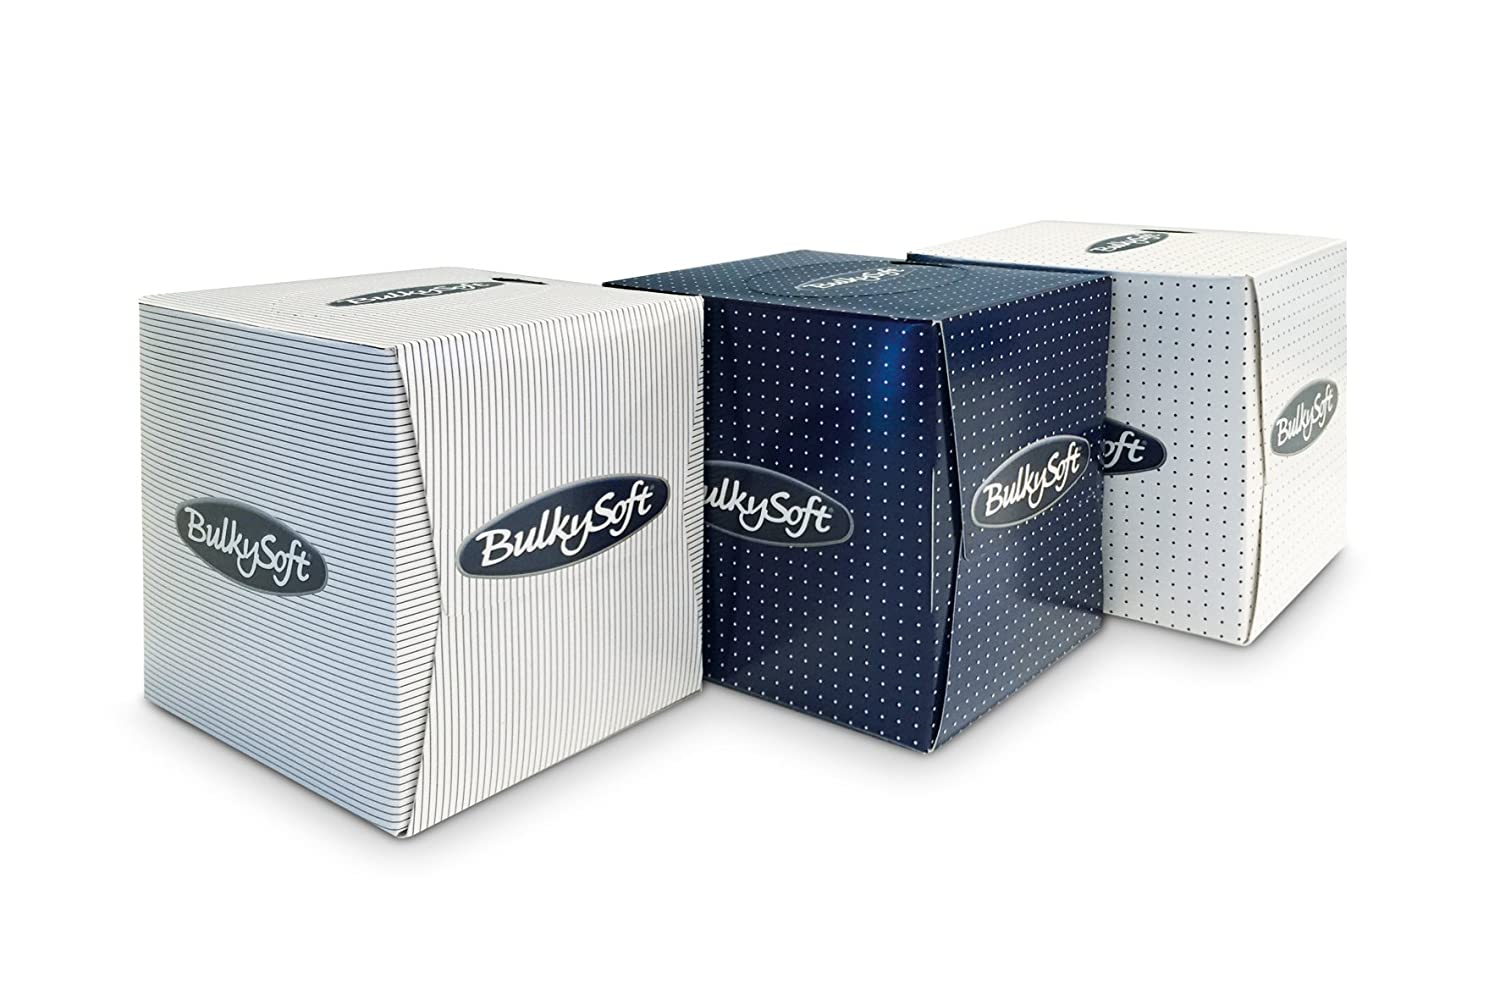 Bulky Soft Box of Facial Tissues Cube, Bright White, 2 Ply, Pack of 90 Carrara BS-68360